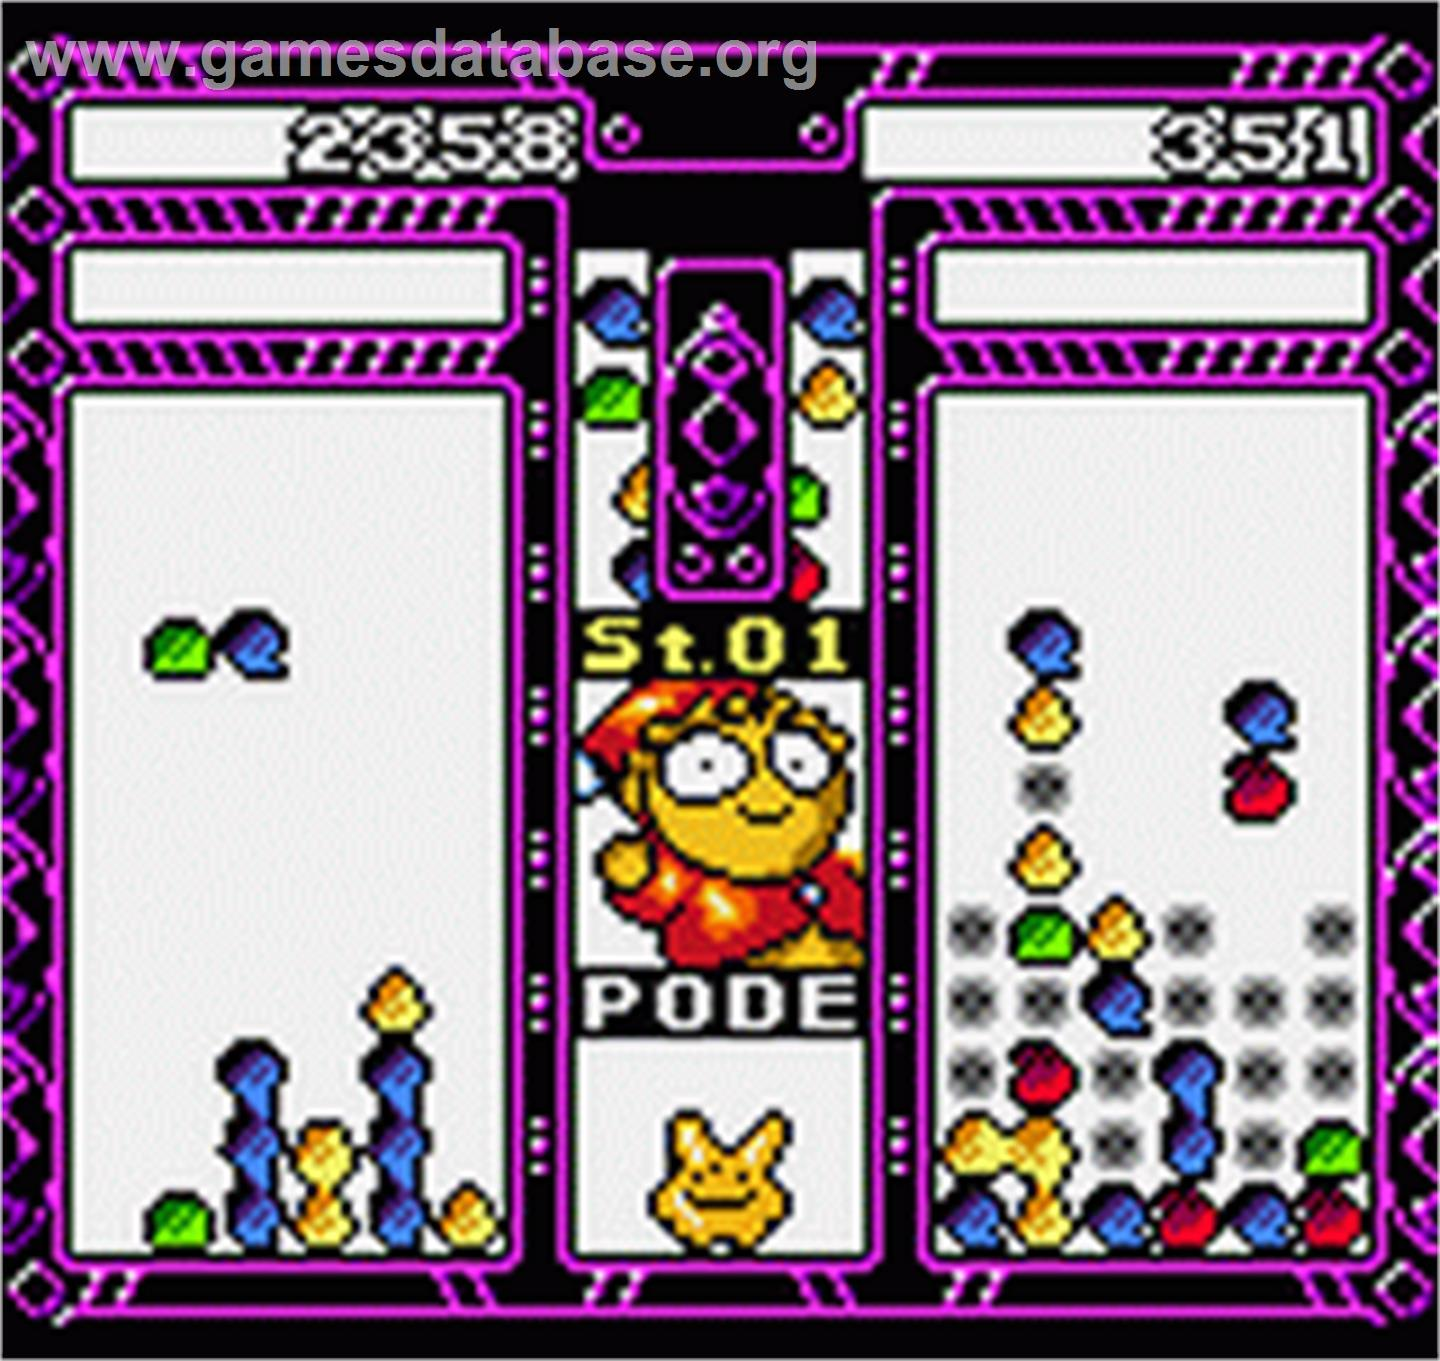 Puyo Puyo 2 - SNK Neo-Geo Pocket Color - Artwork - In Game